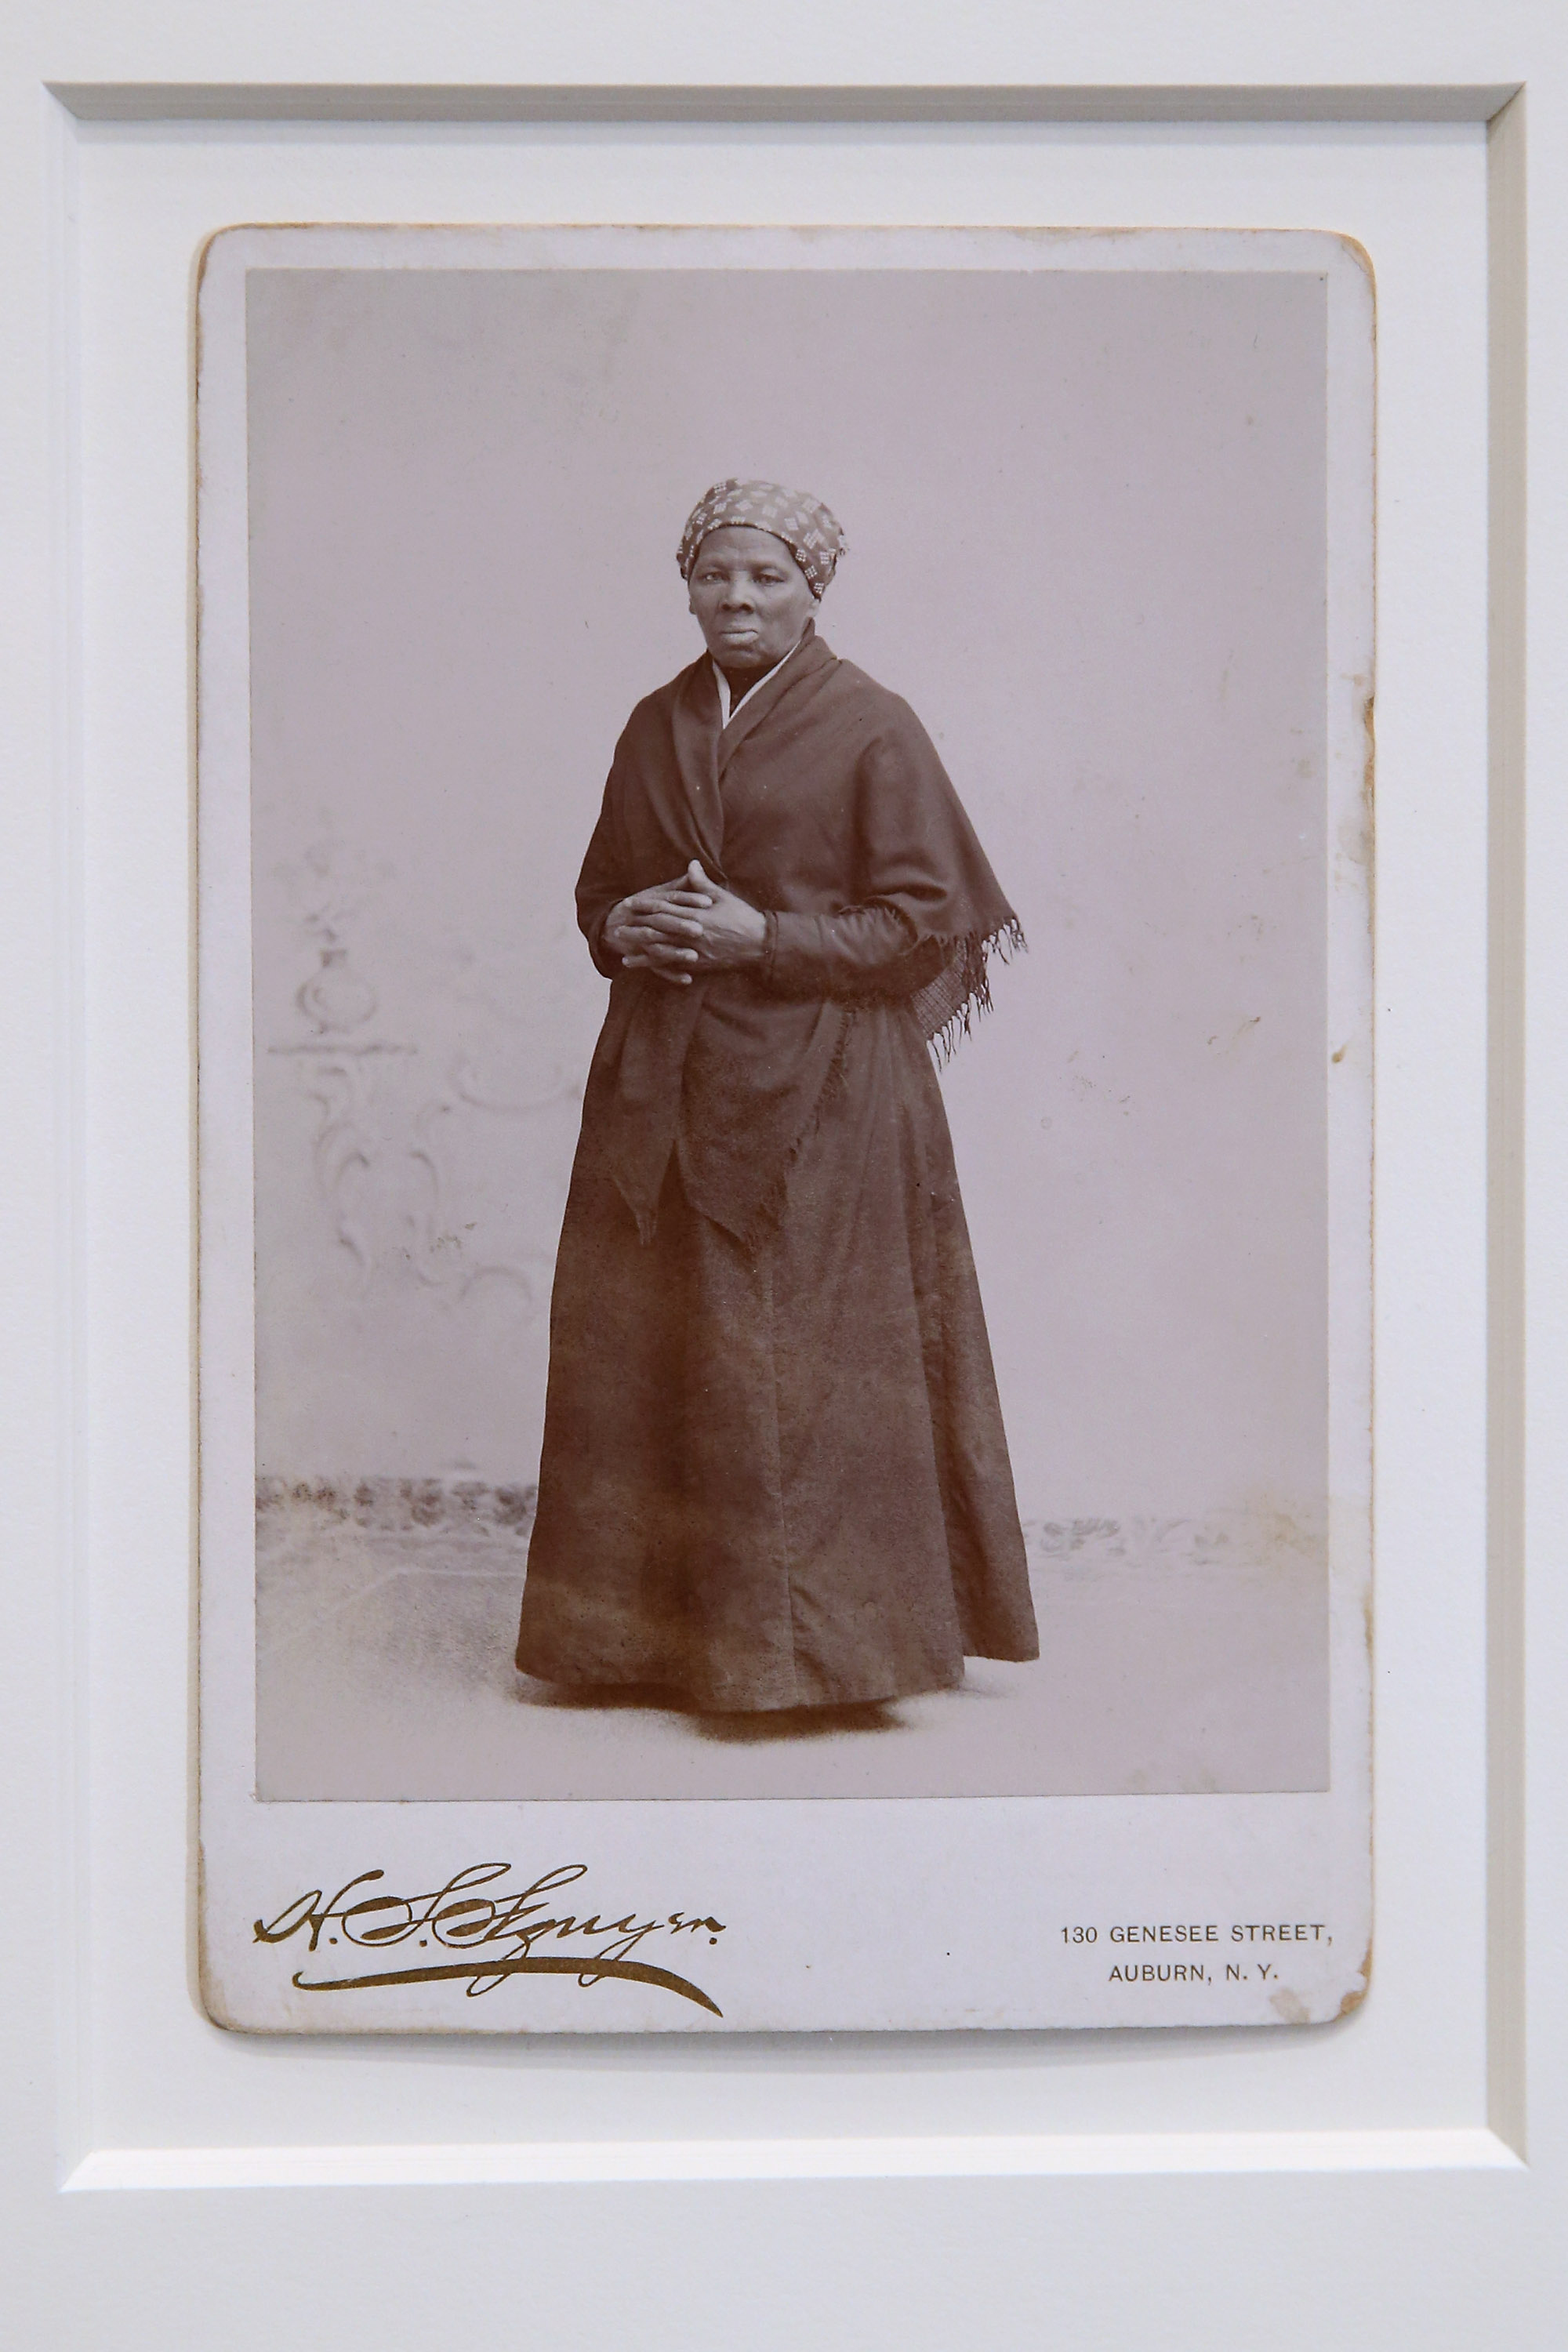 WASHINGTON, DC - Born into slavery, Tubman used a network of antislavery activists and safe houses known at the Underground Railroad to help lead about 13 missions to rescue about 70 enslaved family and friends. (Photo by Chip Somodevilla/Getty Images)